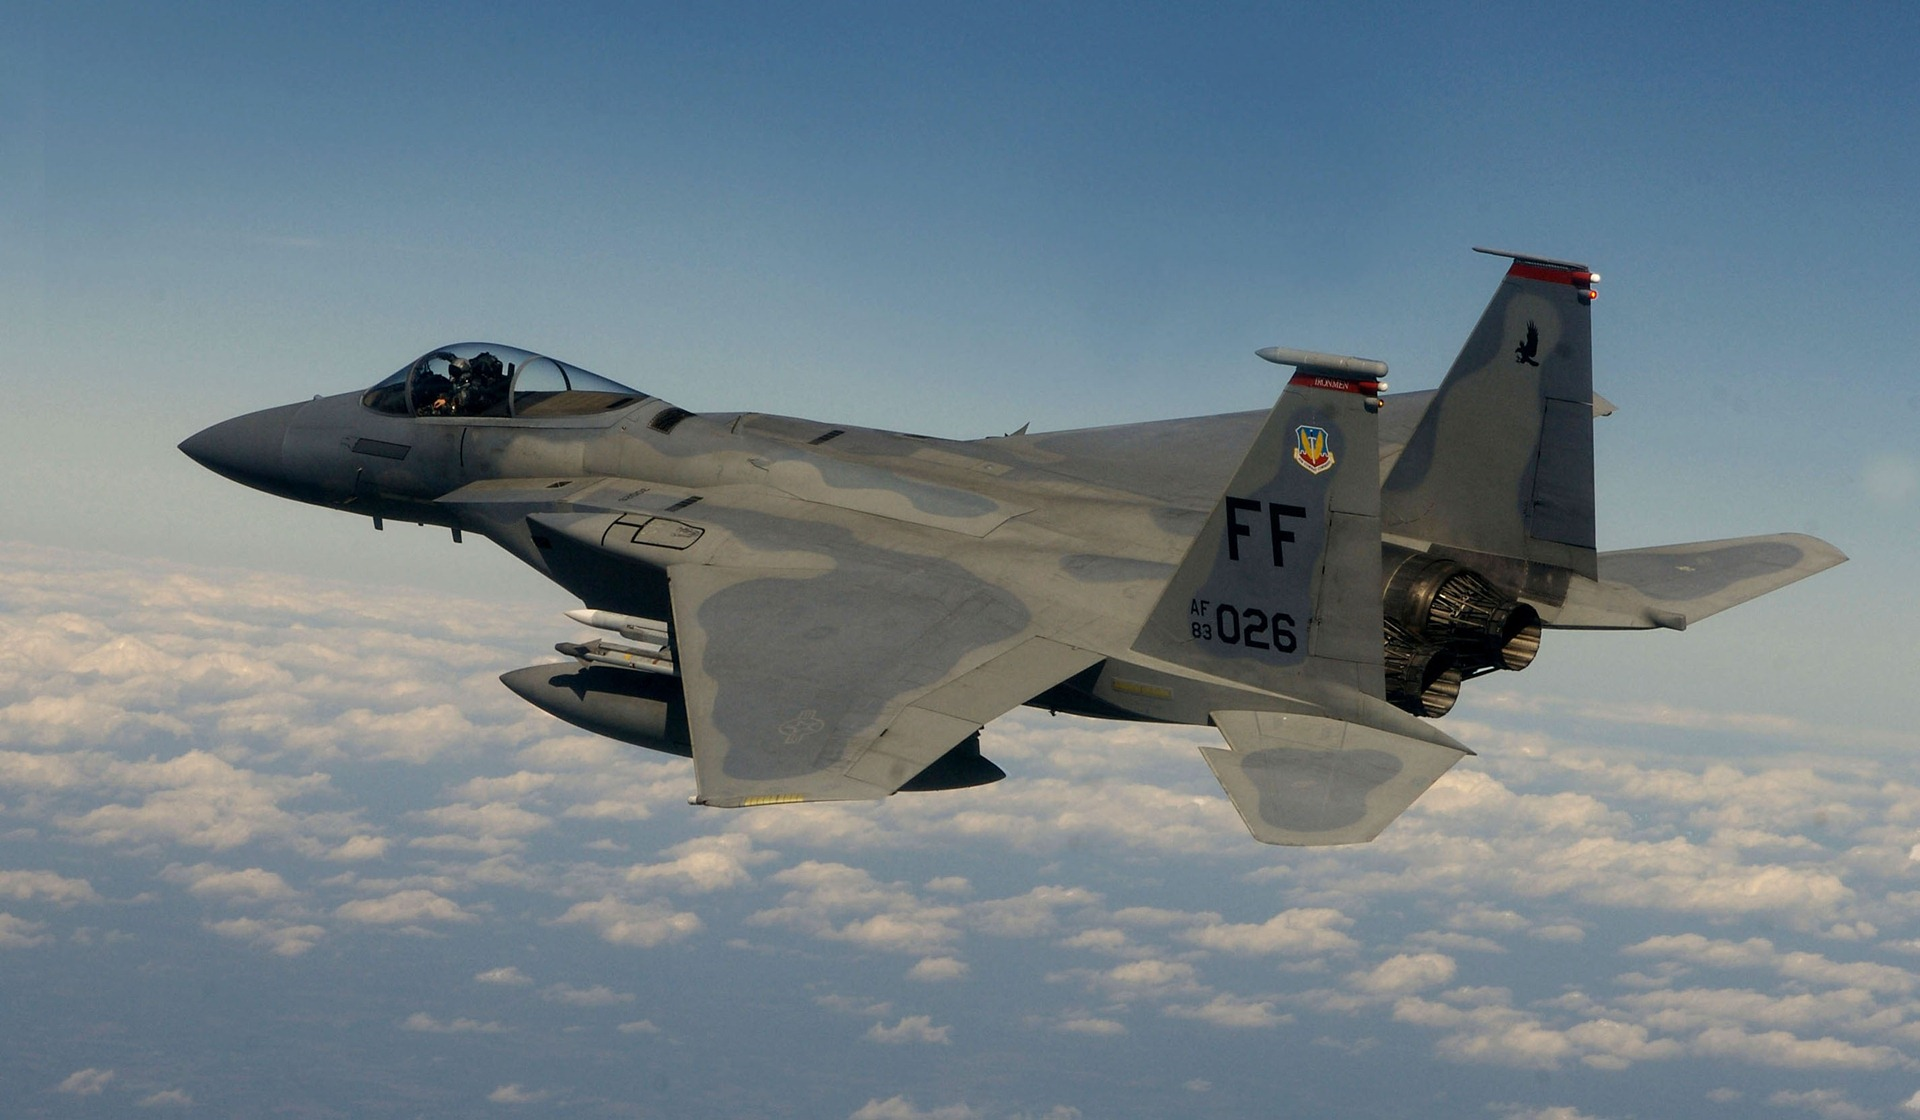 Fastest Jet In The World >> Fastest Fighter Jet In The World Best Fighter Jetbest Fighter Jet